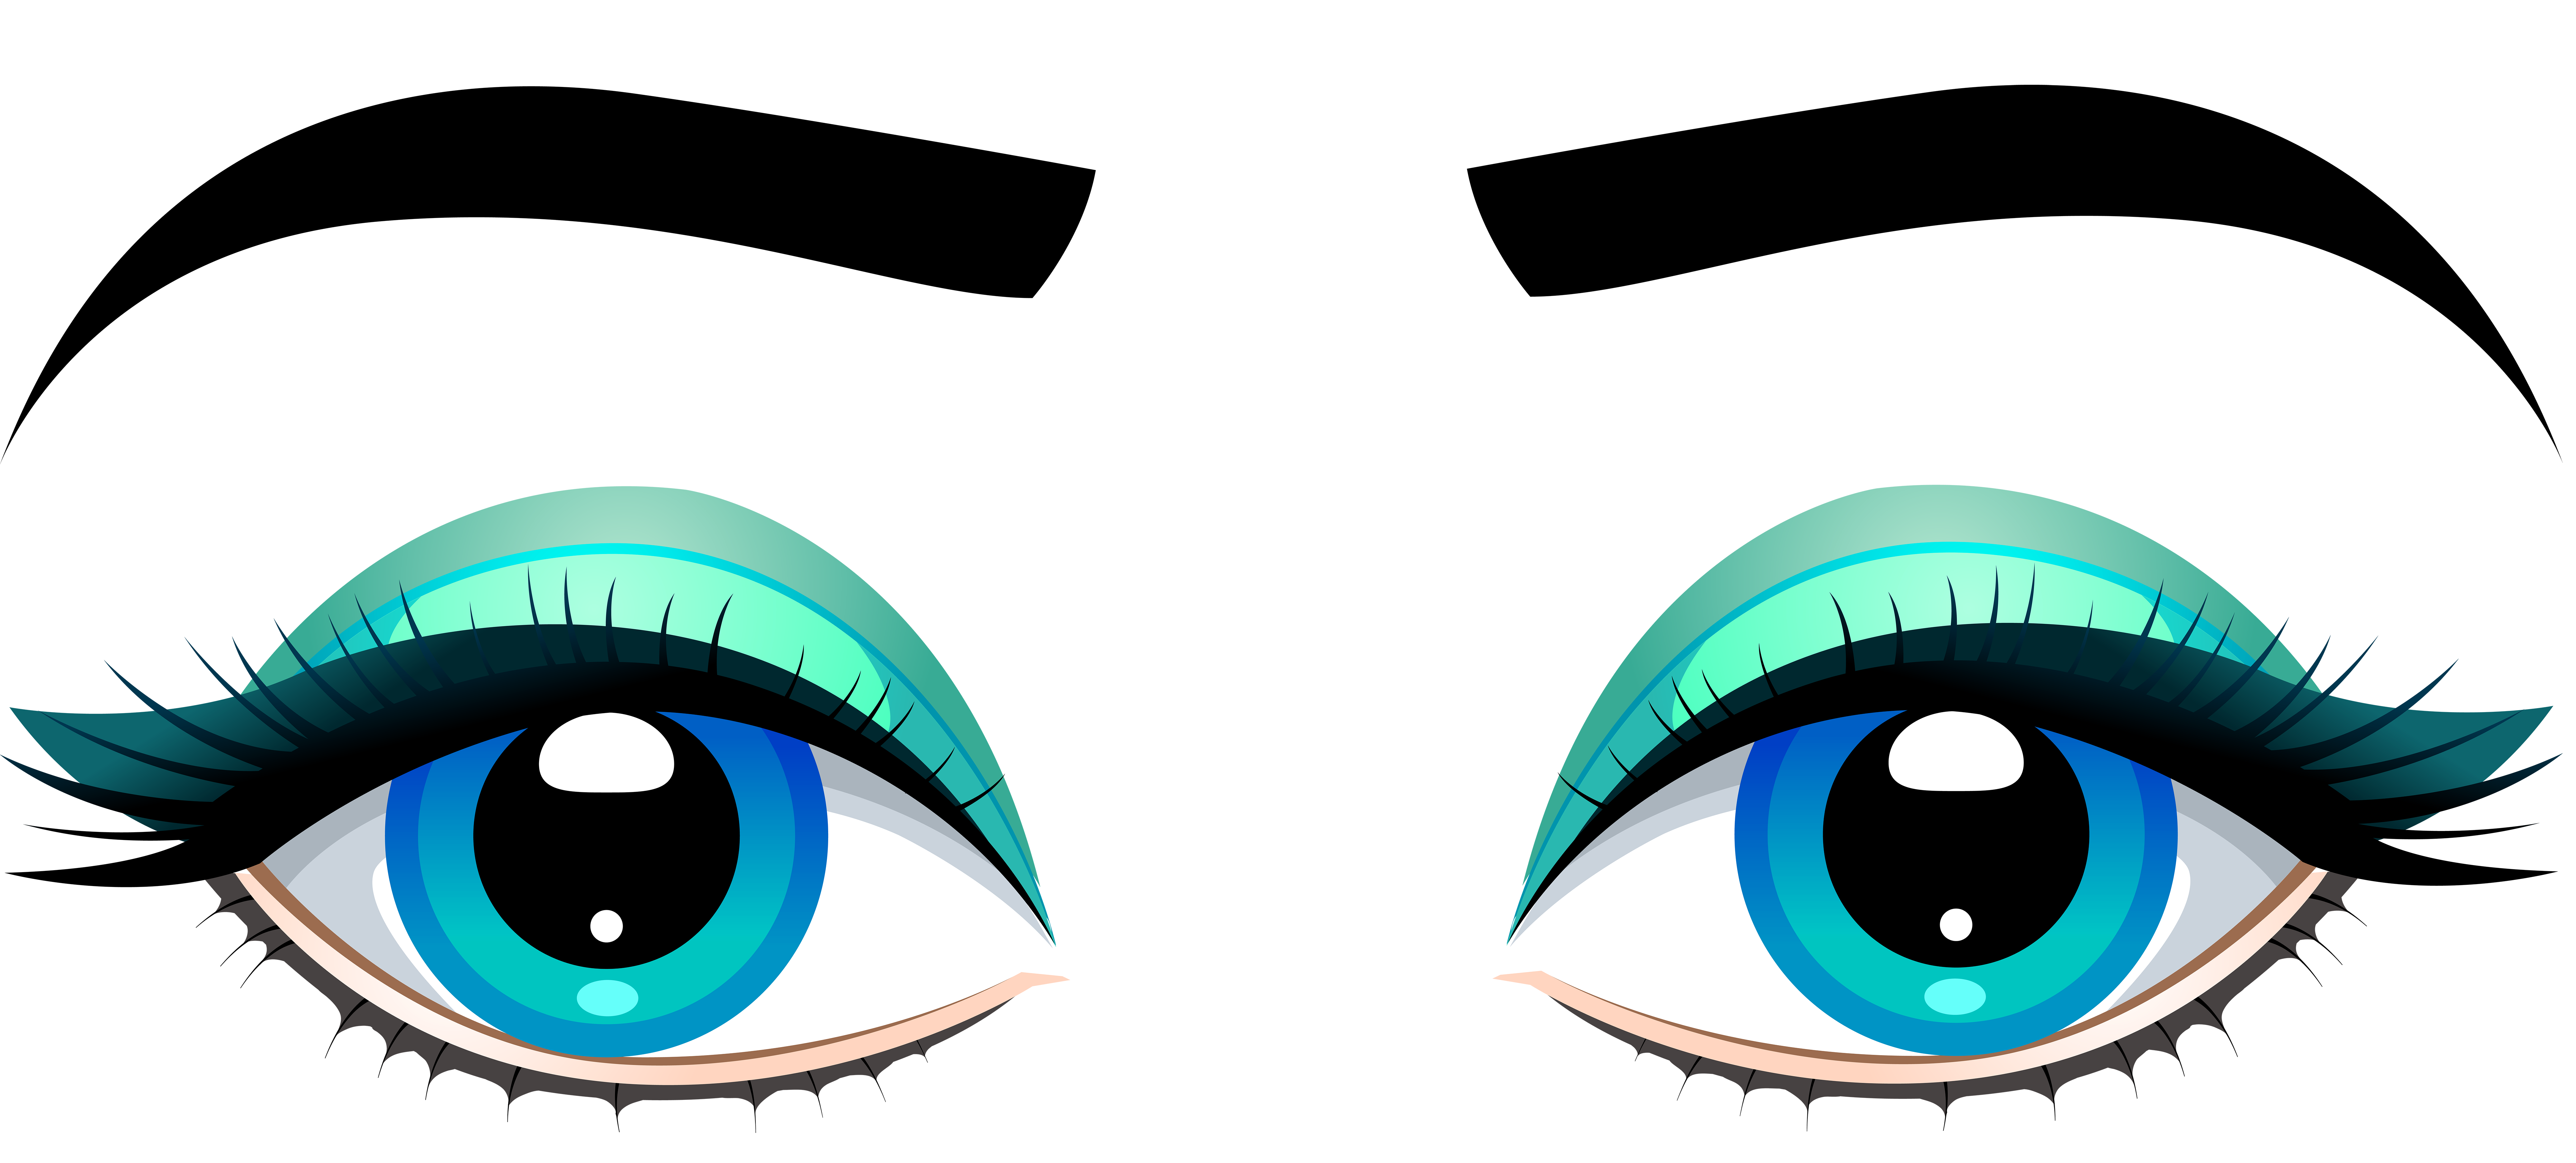 8000x3611 Female Blue Eyes With Eyebrows Png Clip Art